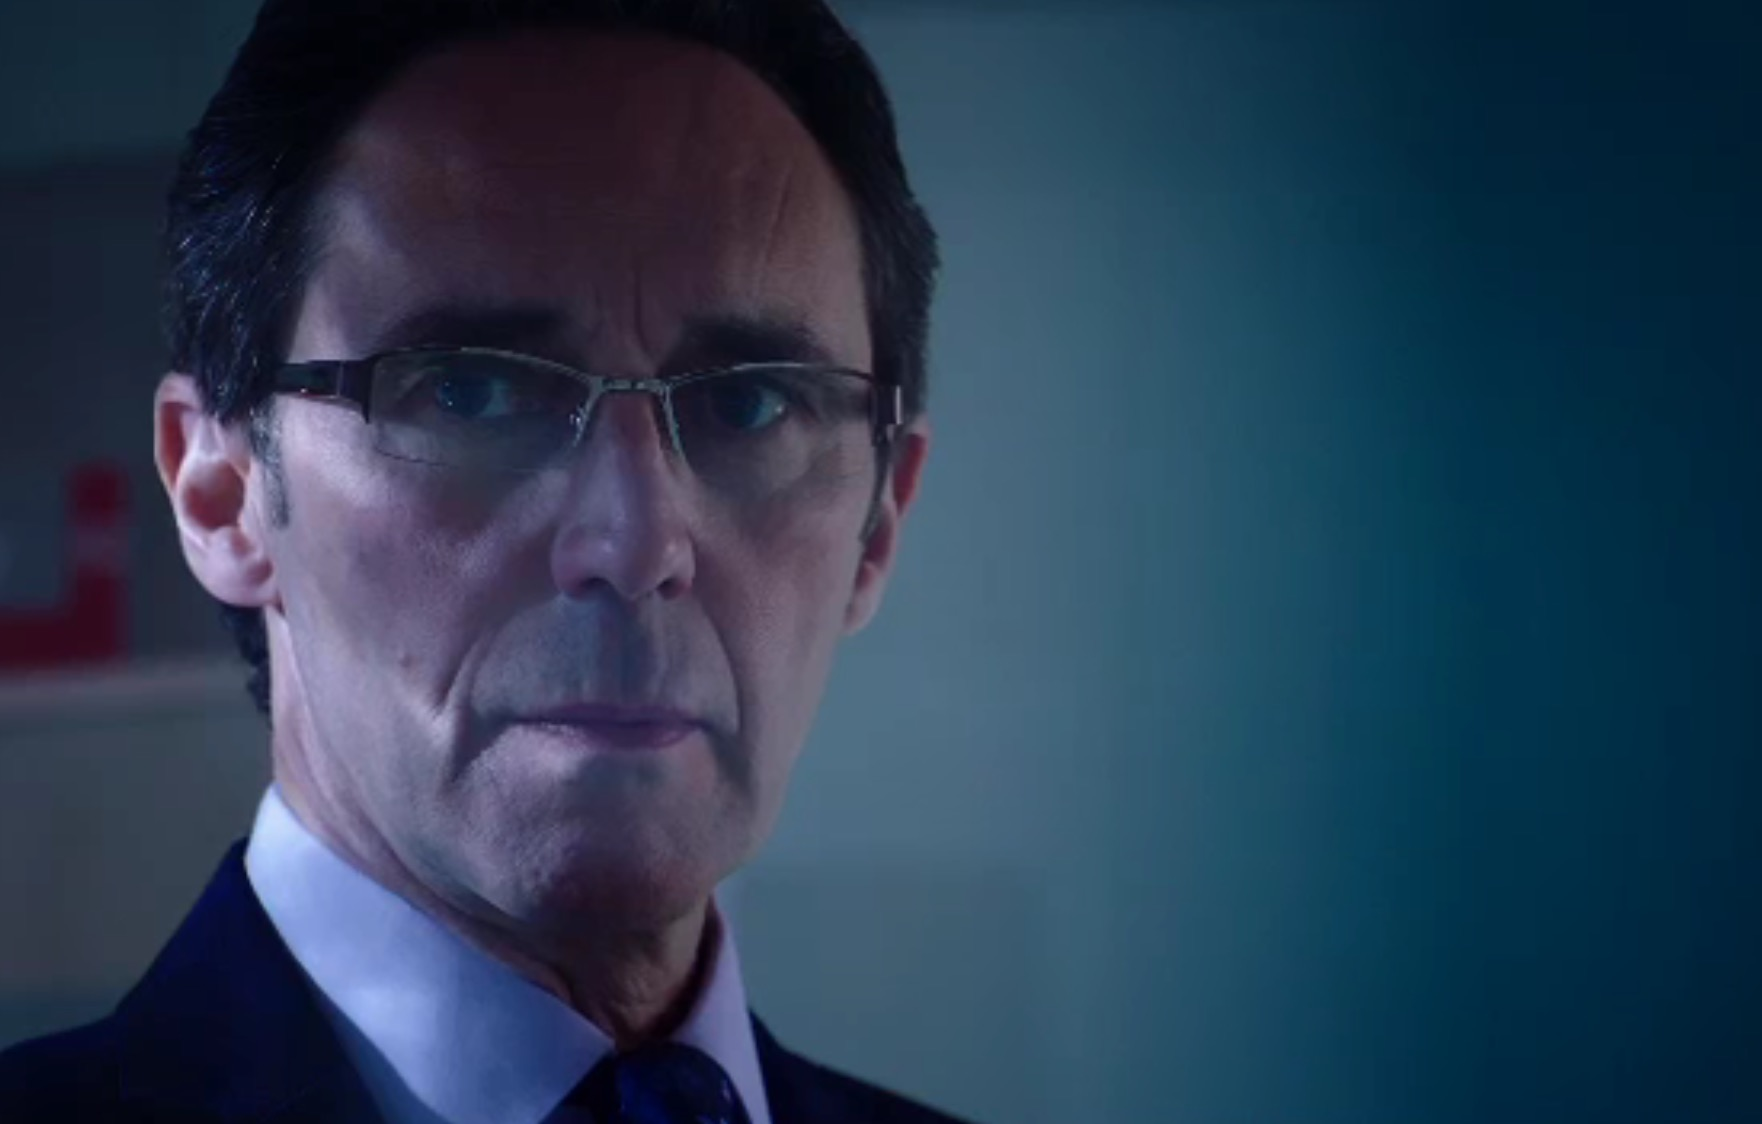 7 Holby City spoilers: Hanssen is suspicious about Gaskell, Evie's in trouble and more